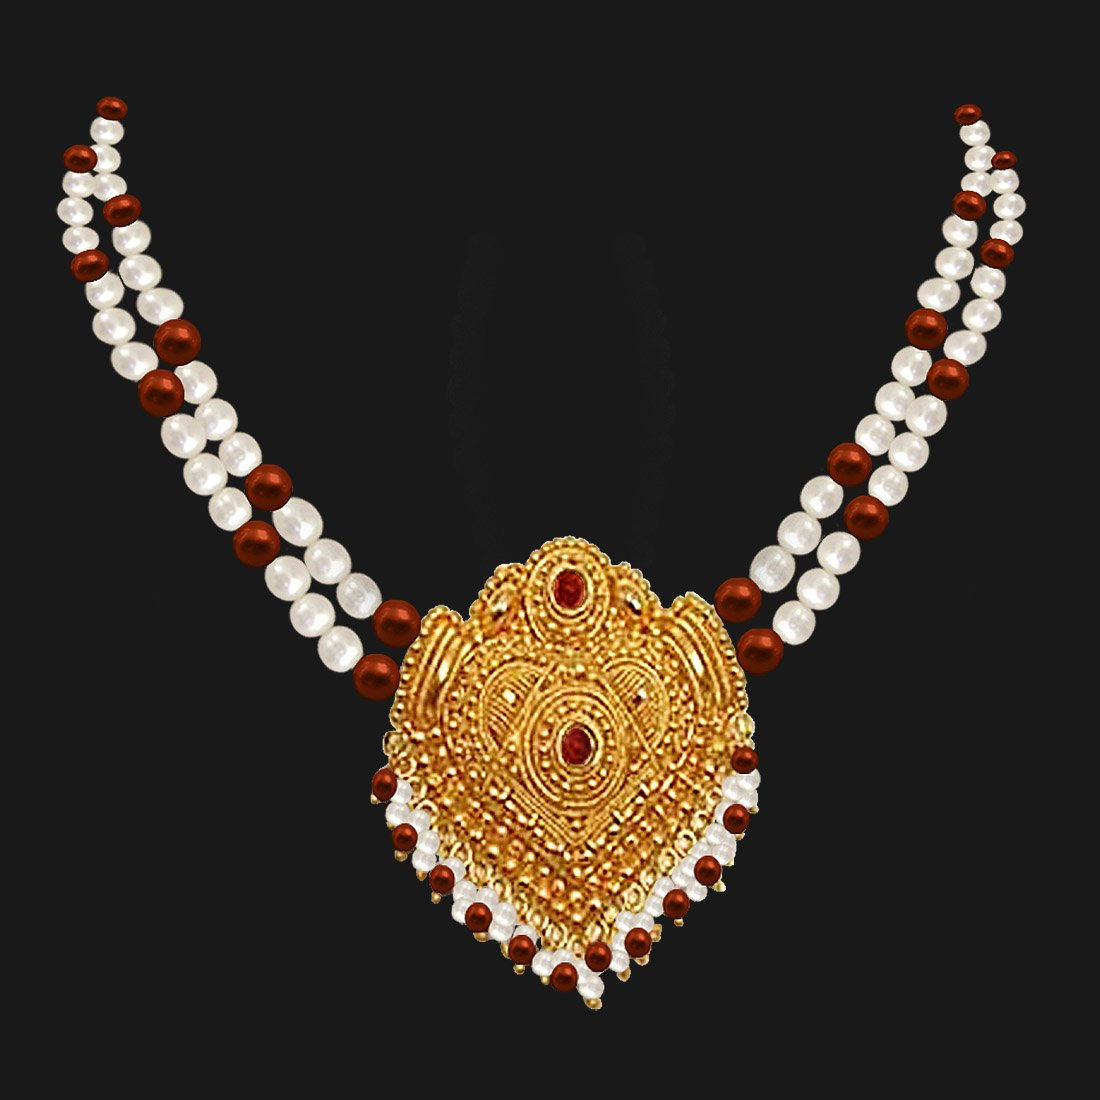 Ornate Beauty - Gold Plated Temple Design Pendant & 2 Line Freshwater Pearl & Tiger Eye Beads Necklace for Women (SNP2)